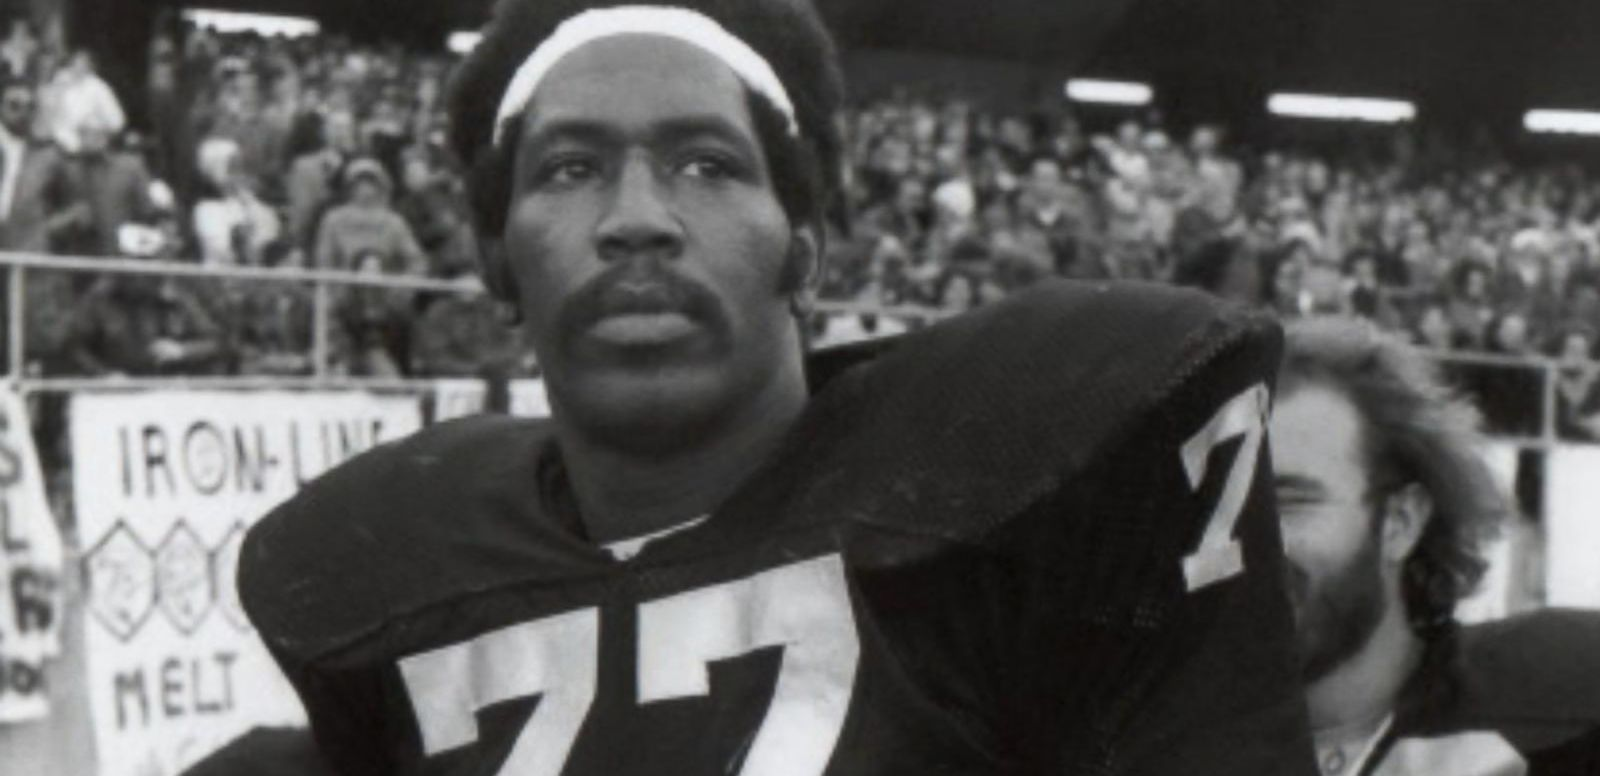 VIDEO: Index: Researchers Find Bubba Smith's 2011 Death Was Caused by Concussion-Based Brain Disease